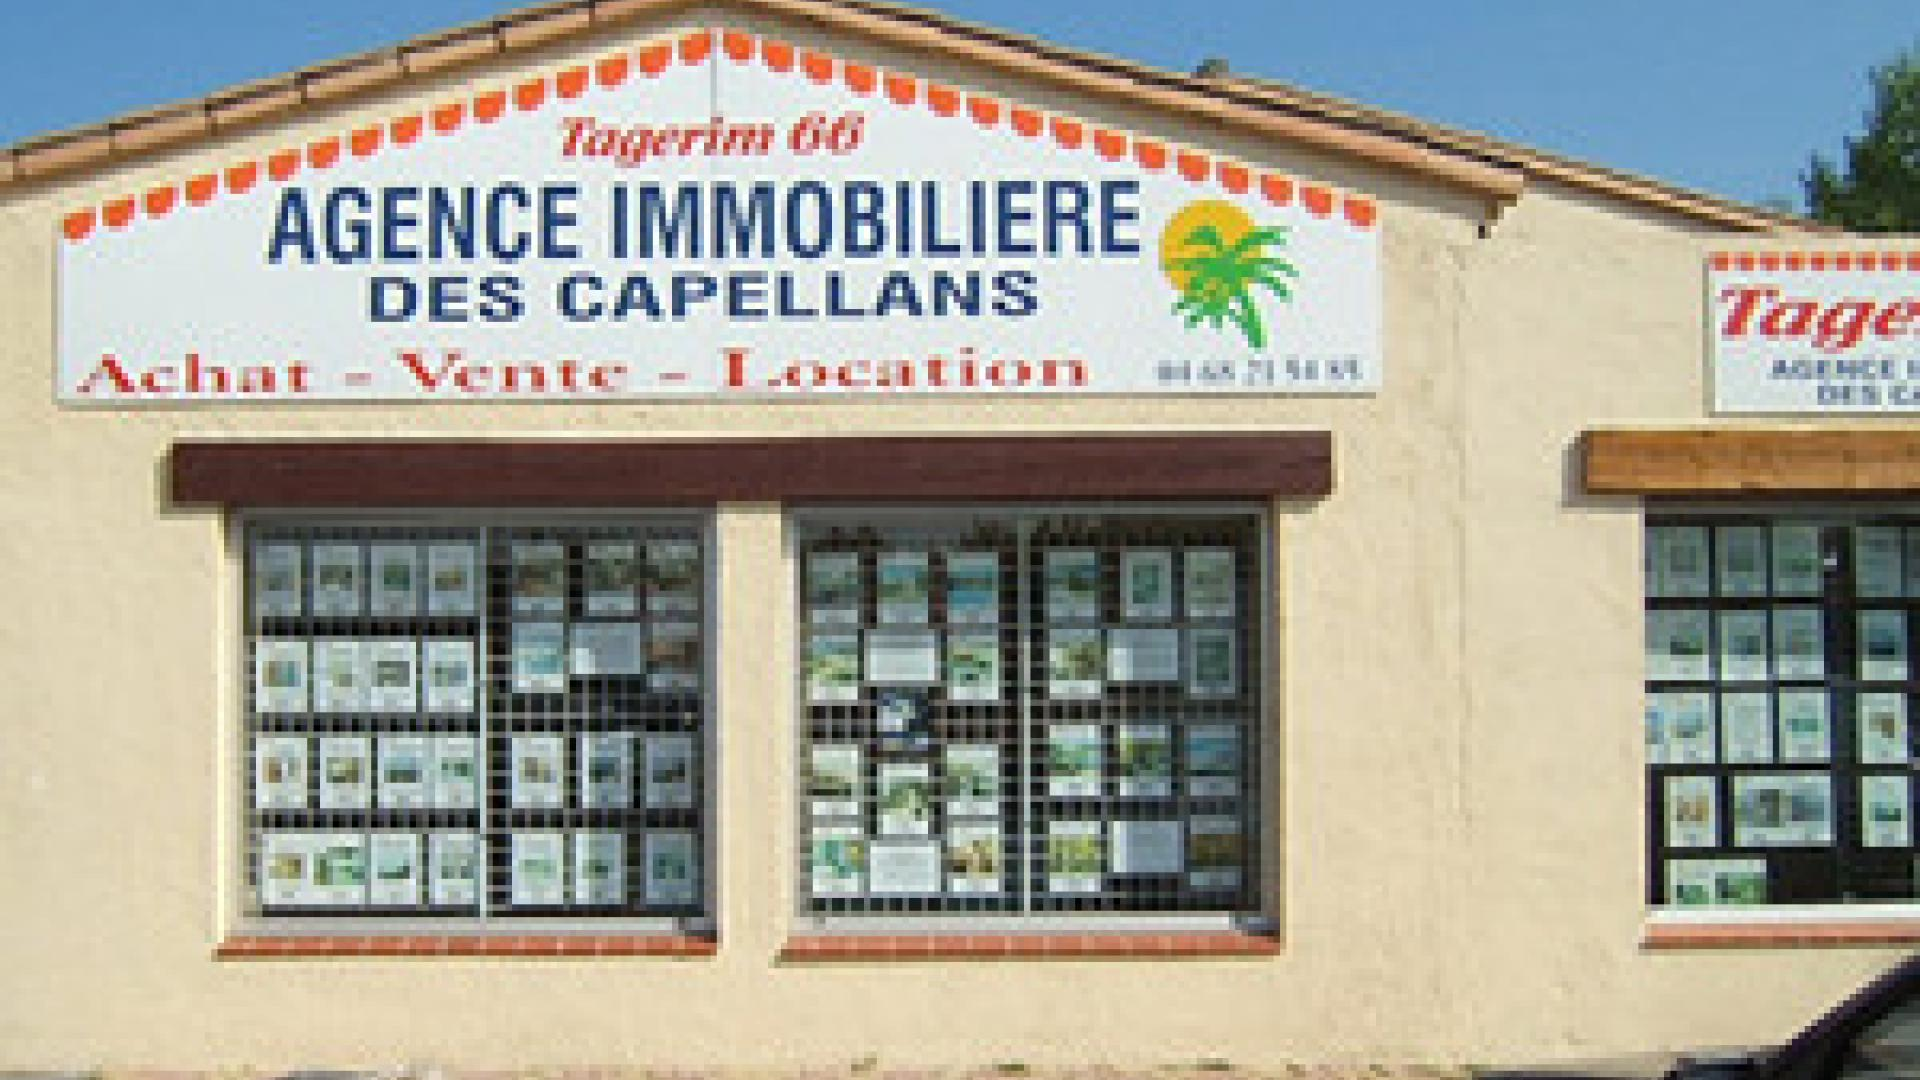 Arthurimmo com tagerim 66 les 2 plages agences for Agence immobiliere 66